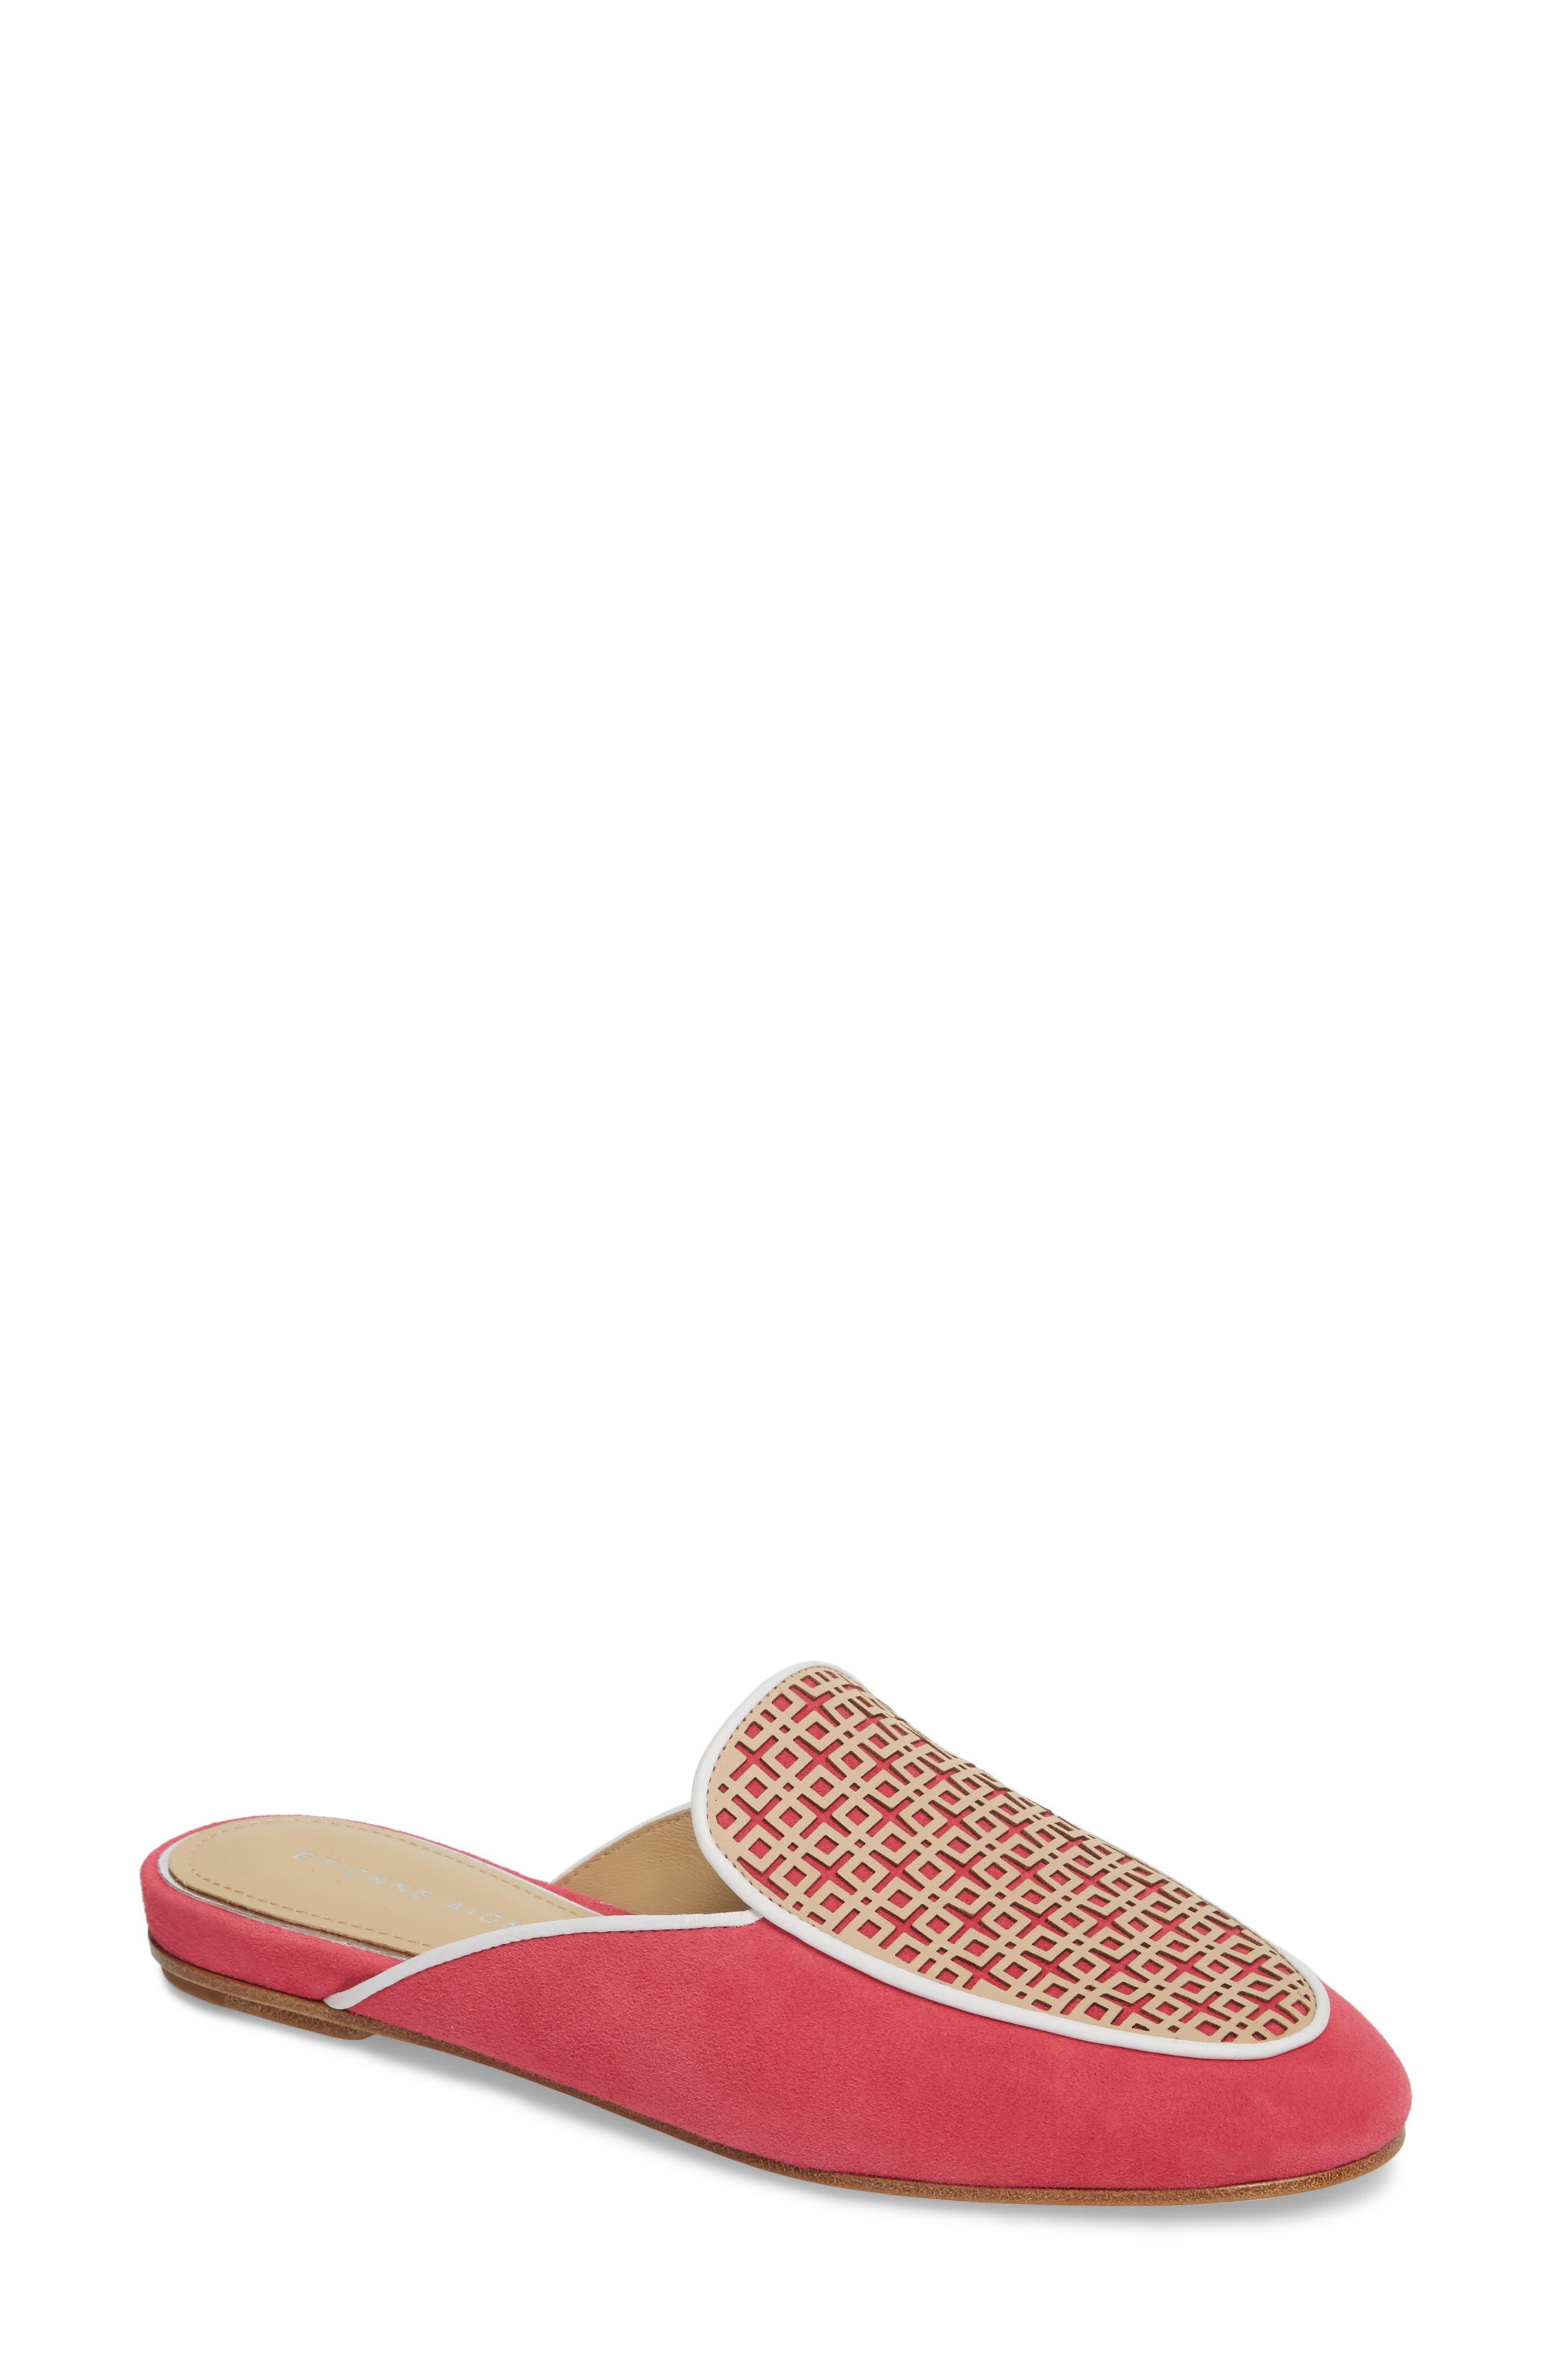 Caymen Mule,                         Main,                         color, Natural/ Peony/ White